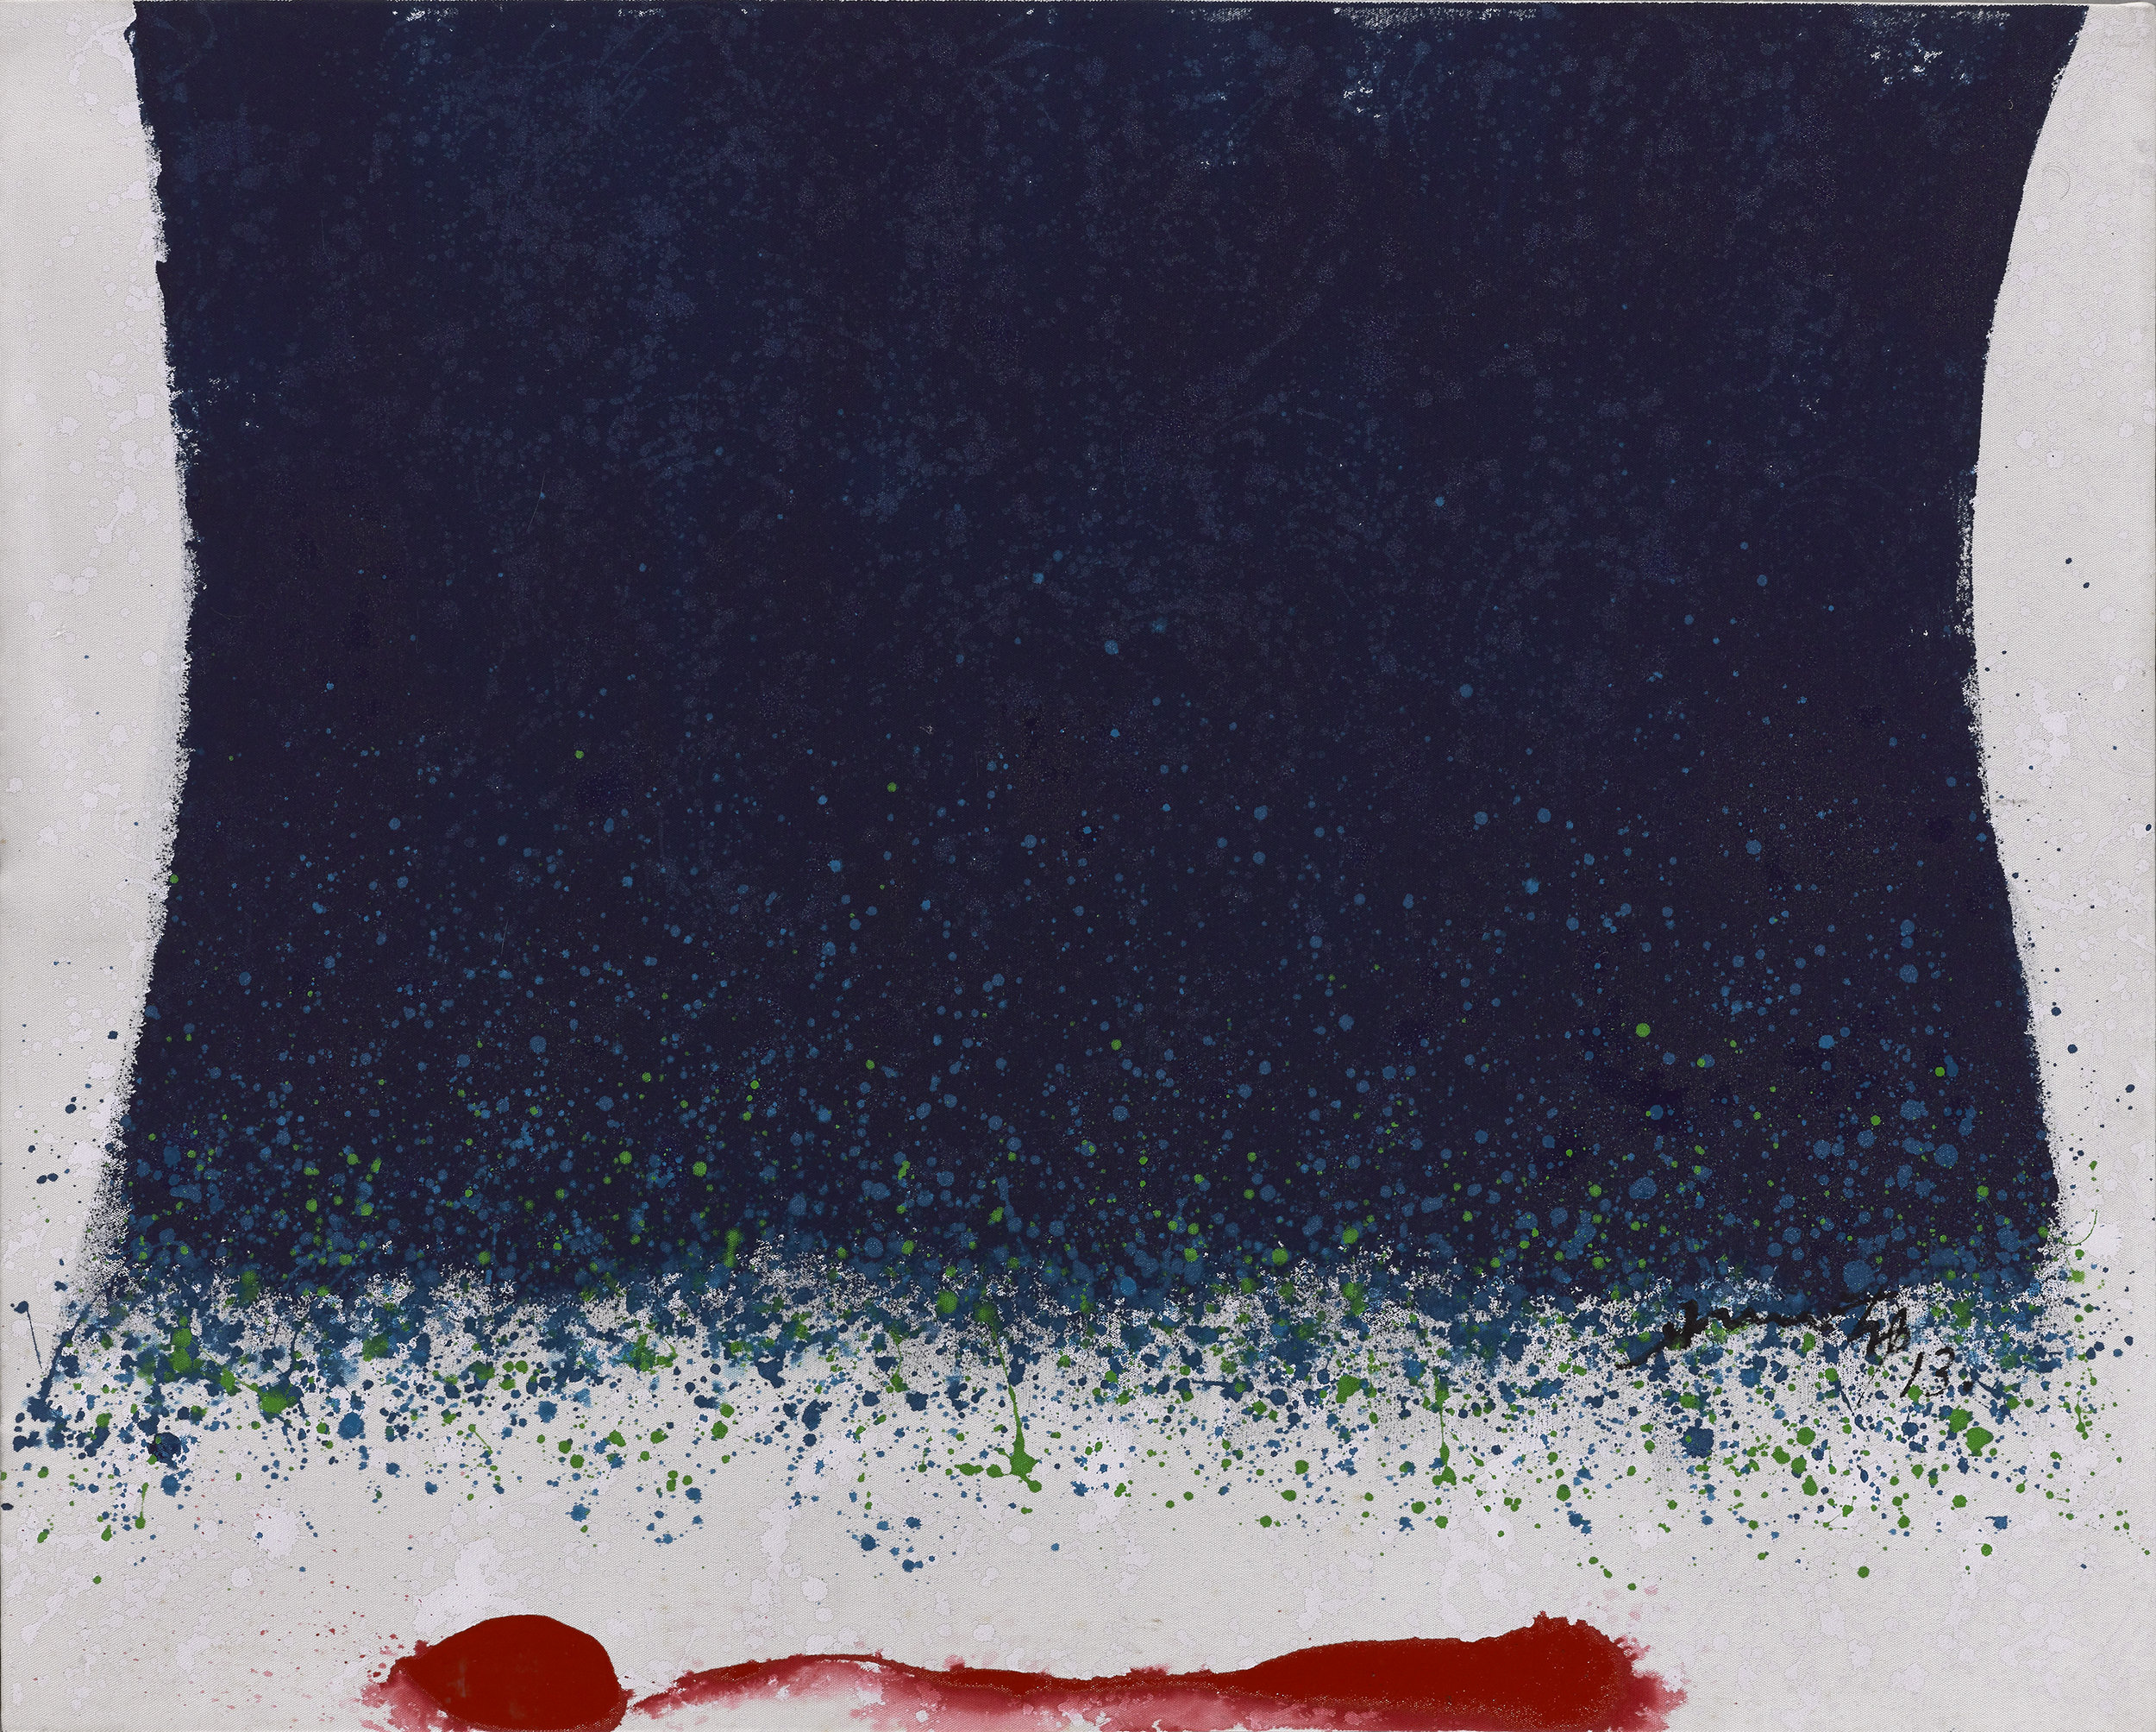 Hsiao Chin, Calmness, acrylic on canvas, 88 x 110 cm, 2013